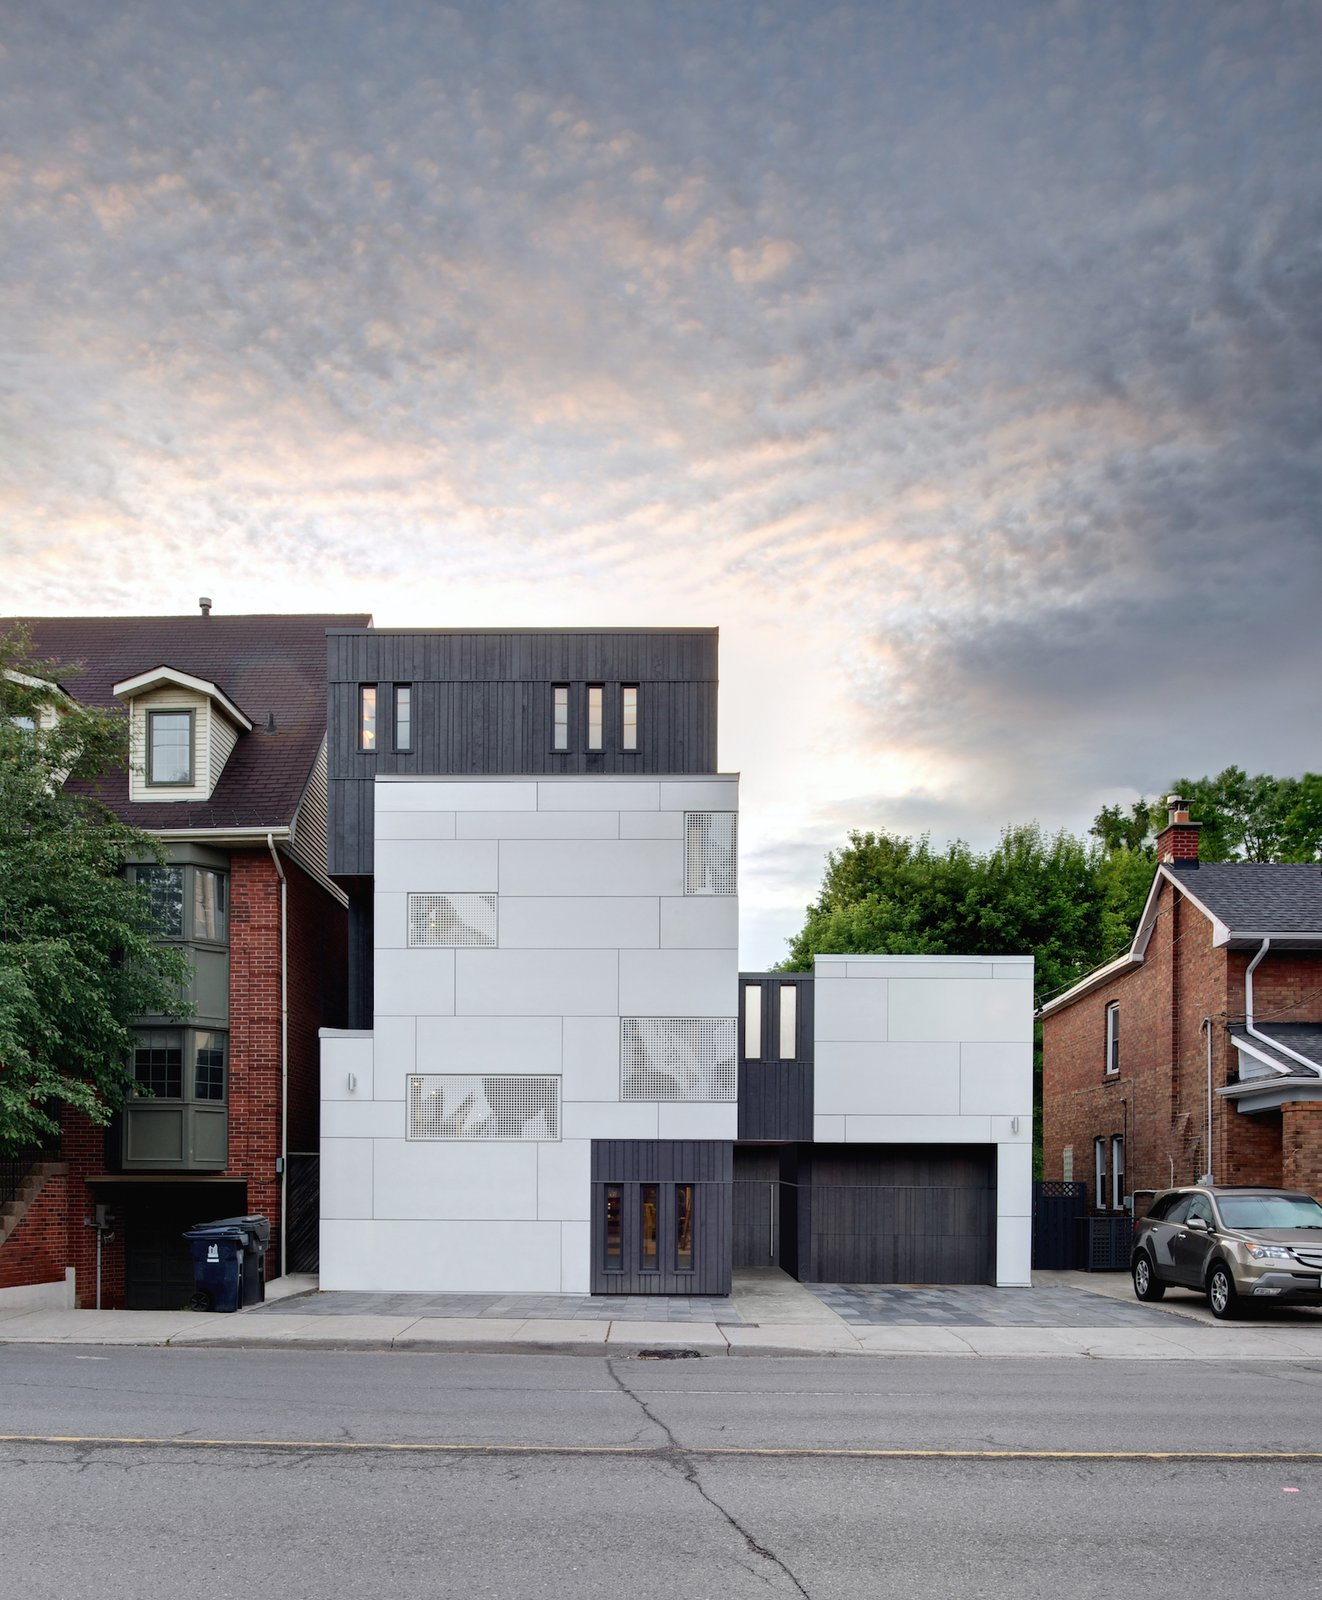 The repurposed home, which formerly housed famed flower bulb distribution company Cruickshank's, is now a local landmark in its own right, standing out on the street as a modern reminder of the building's history.  20+ Modern Warehouse and Garages Conversions by Zachary Edelson from From a Flower Bulb Factory to an Entertainment Hub